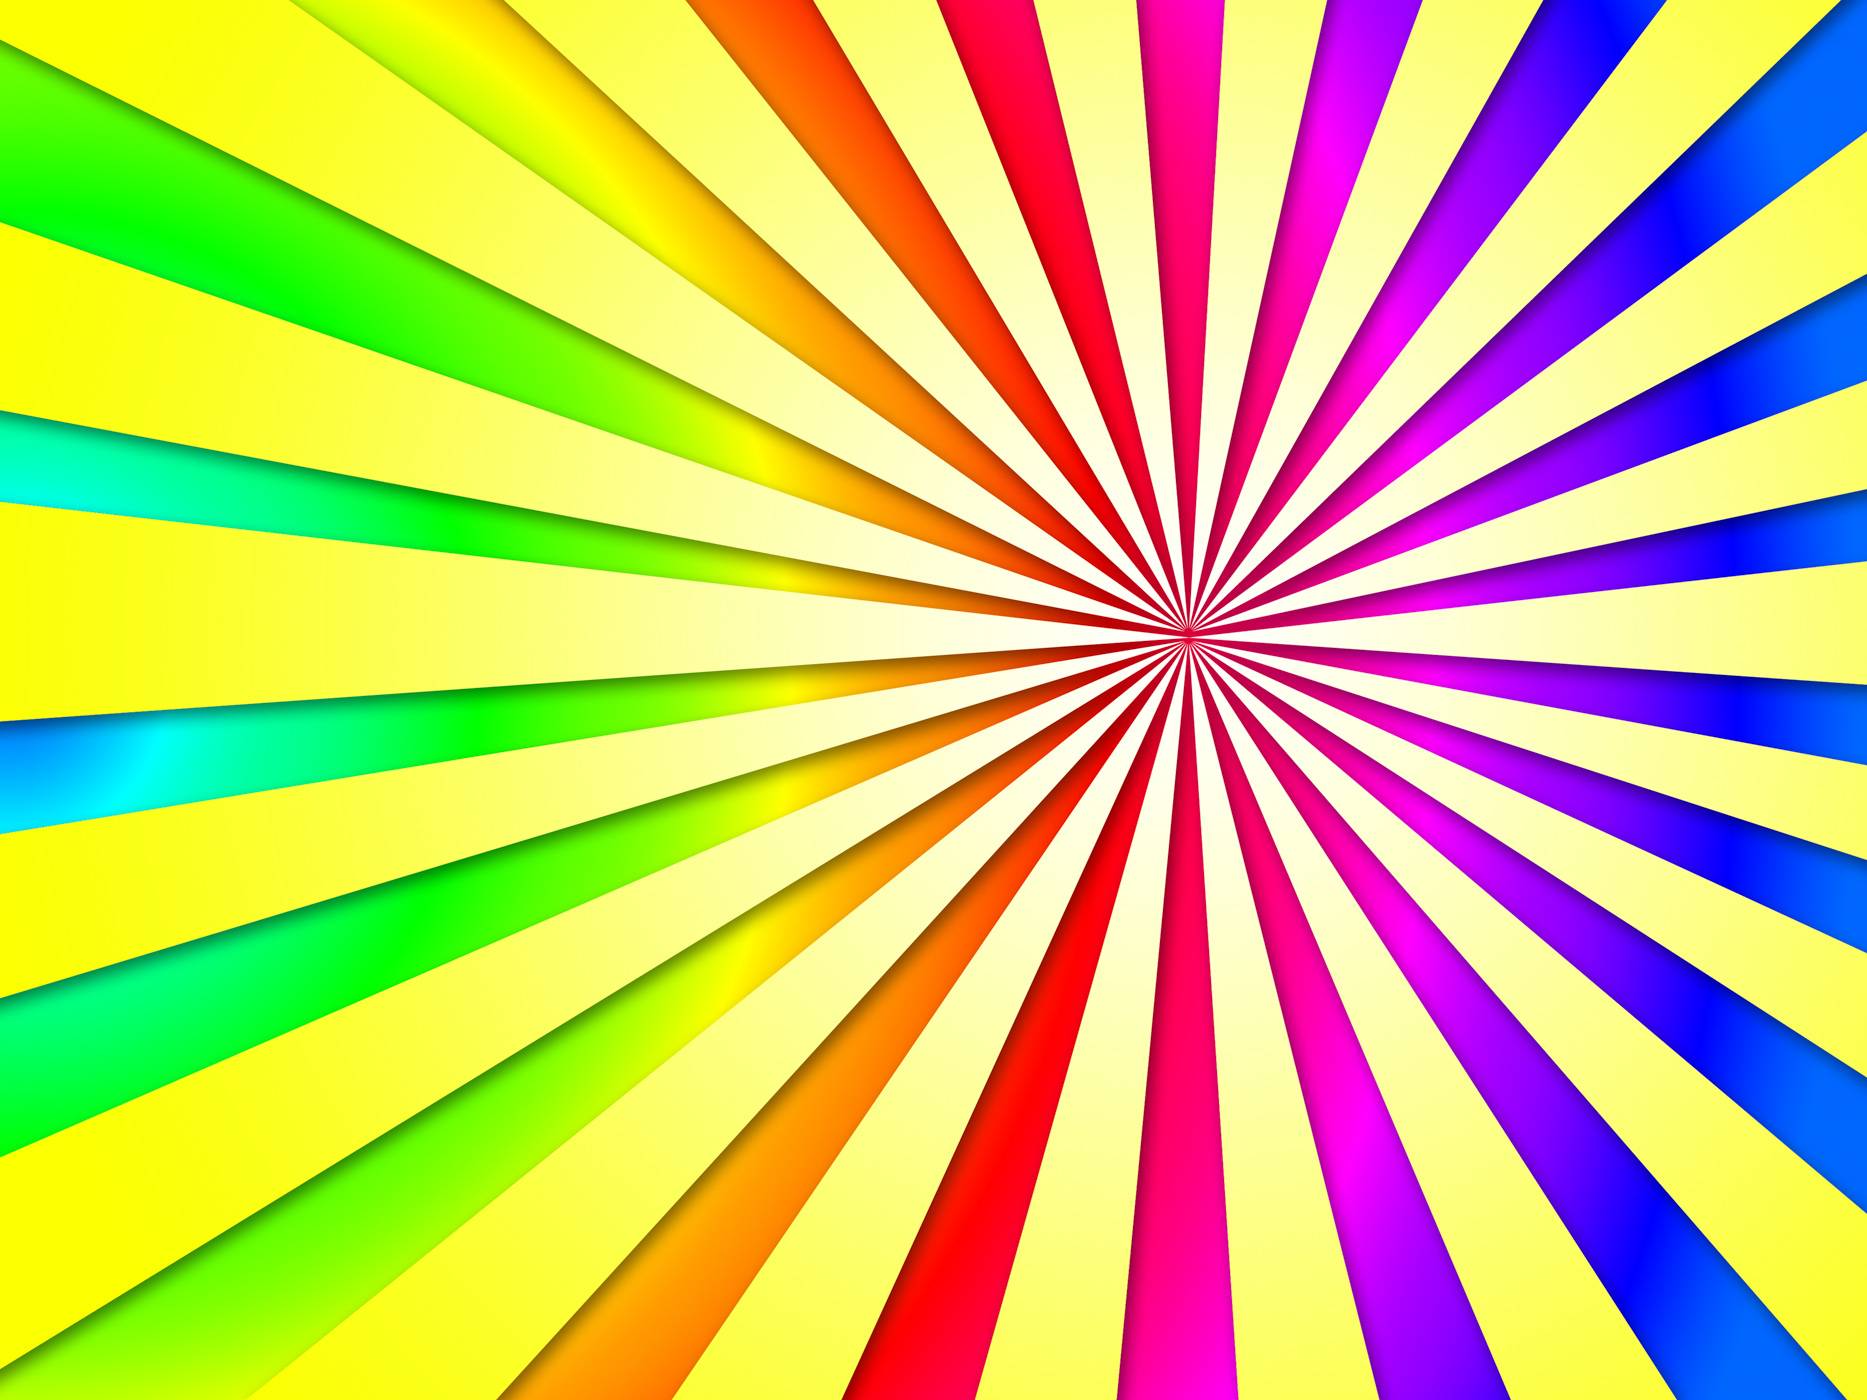 Colourful dizzy striped tunnel background shows dizzy illustration or photo